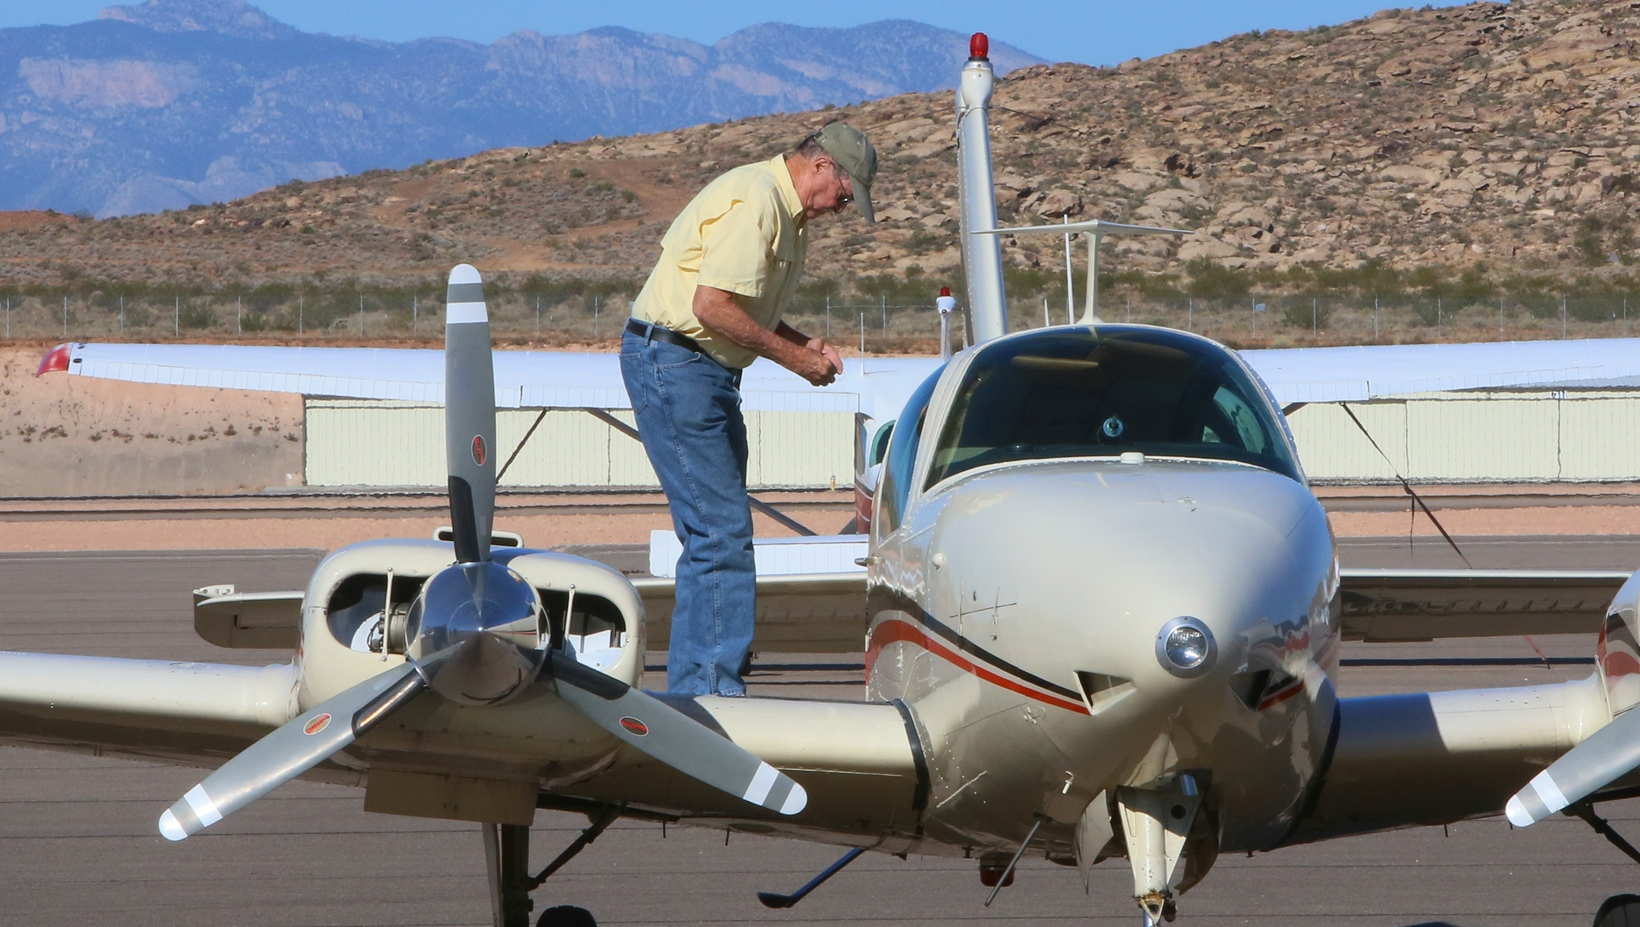 Pilot Bill Williams examines plane after landing  safely after dealing with landing gear that for a time would not engage on his Beechcraft Baron, St. George Municipal Airport, St. George, Utah, Oct. 20, 2014 | Photo by Kimberly Scott, St. George News